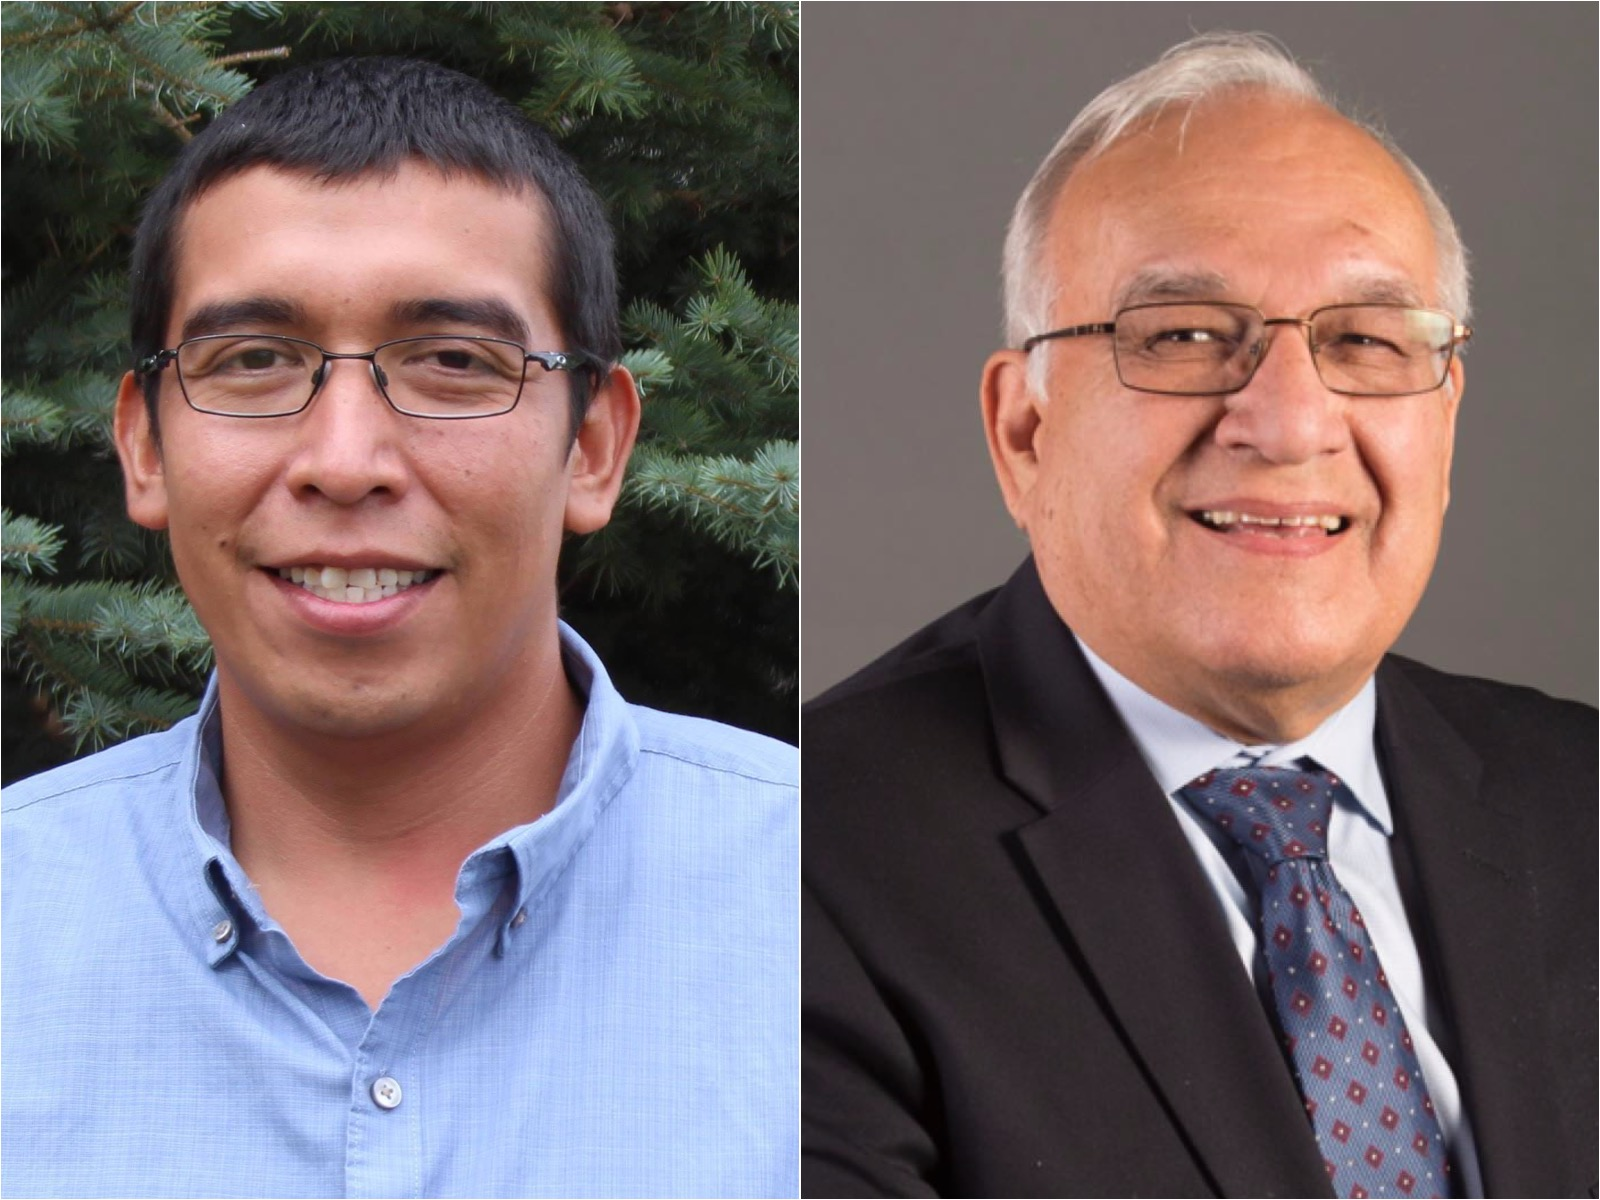 Two newcomers vie for leadership of Oglala Sioux Tribe